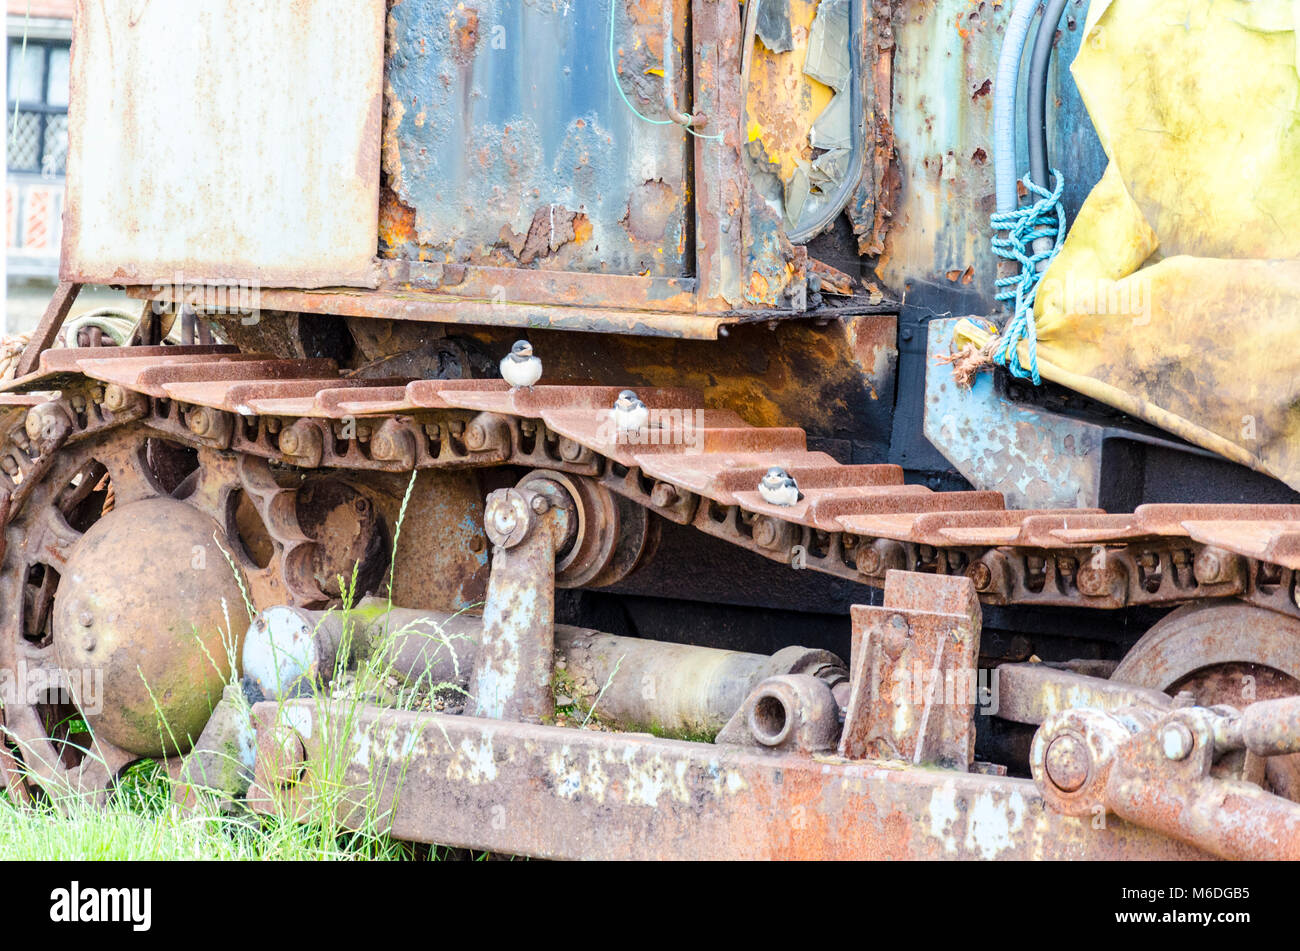 Three recently fledged young swallow chicks on rusty equipment on Aldeburgh beach, Suffolk, UK Stock Photo